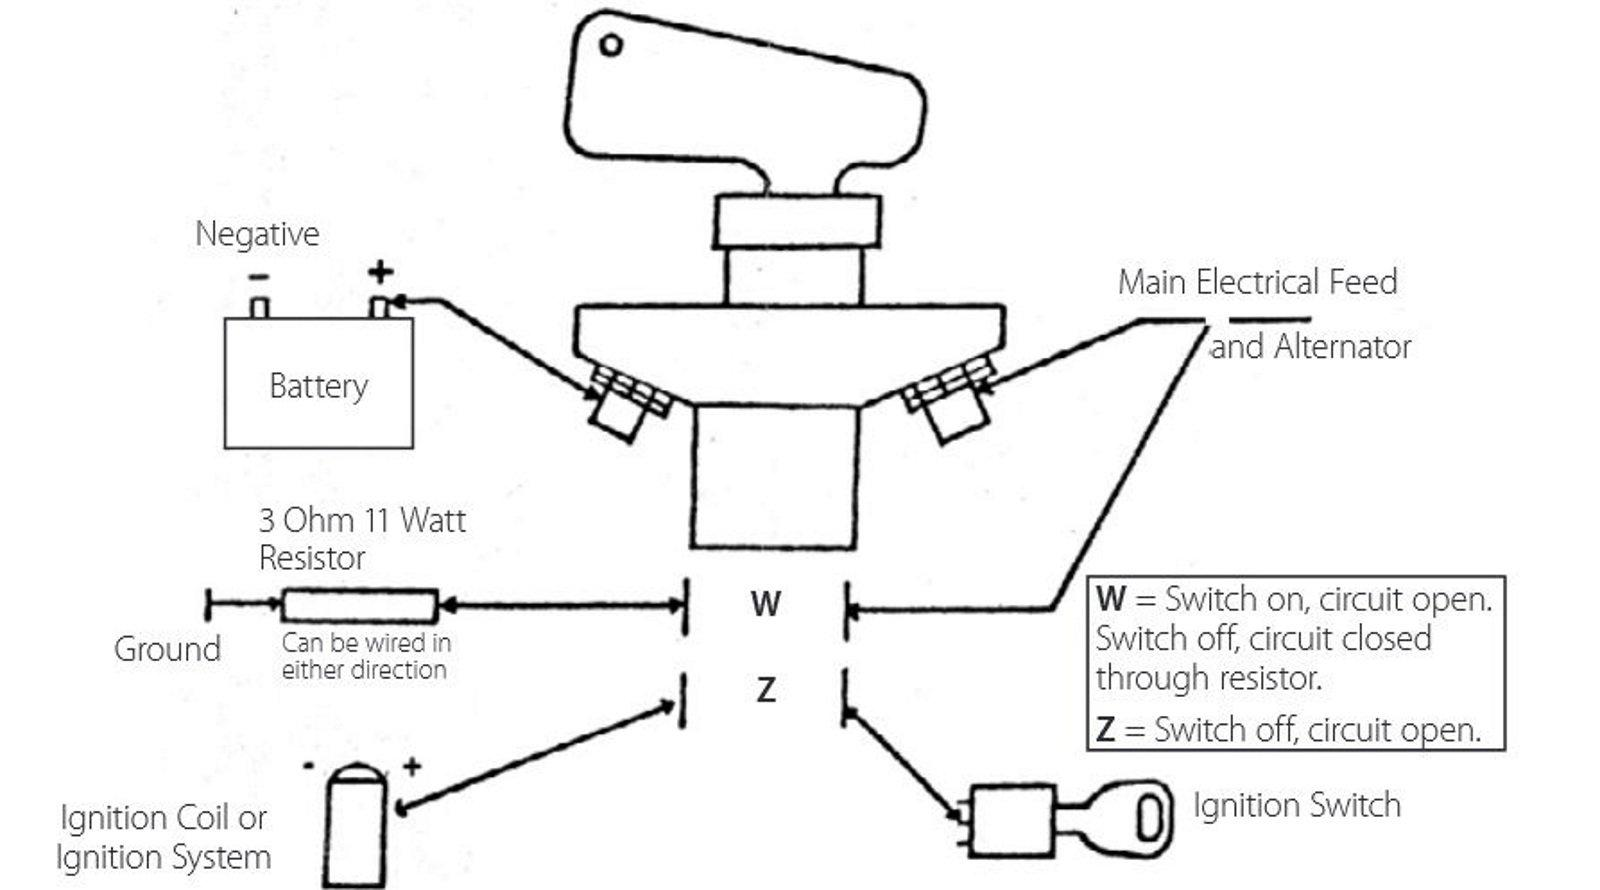 Vanagon View Topic Battery Disconnect For Safety Switch Wiring Diagram Schematic Of The Image May Have Been Reduced In Size Click To Fullscreen